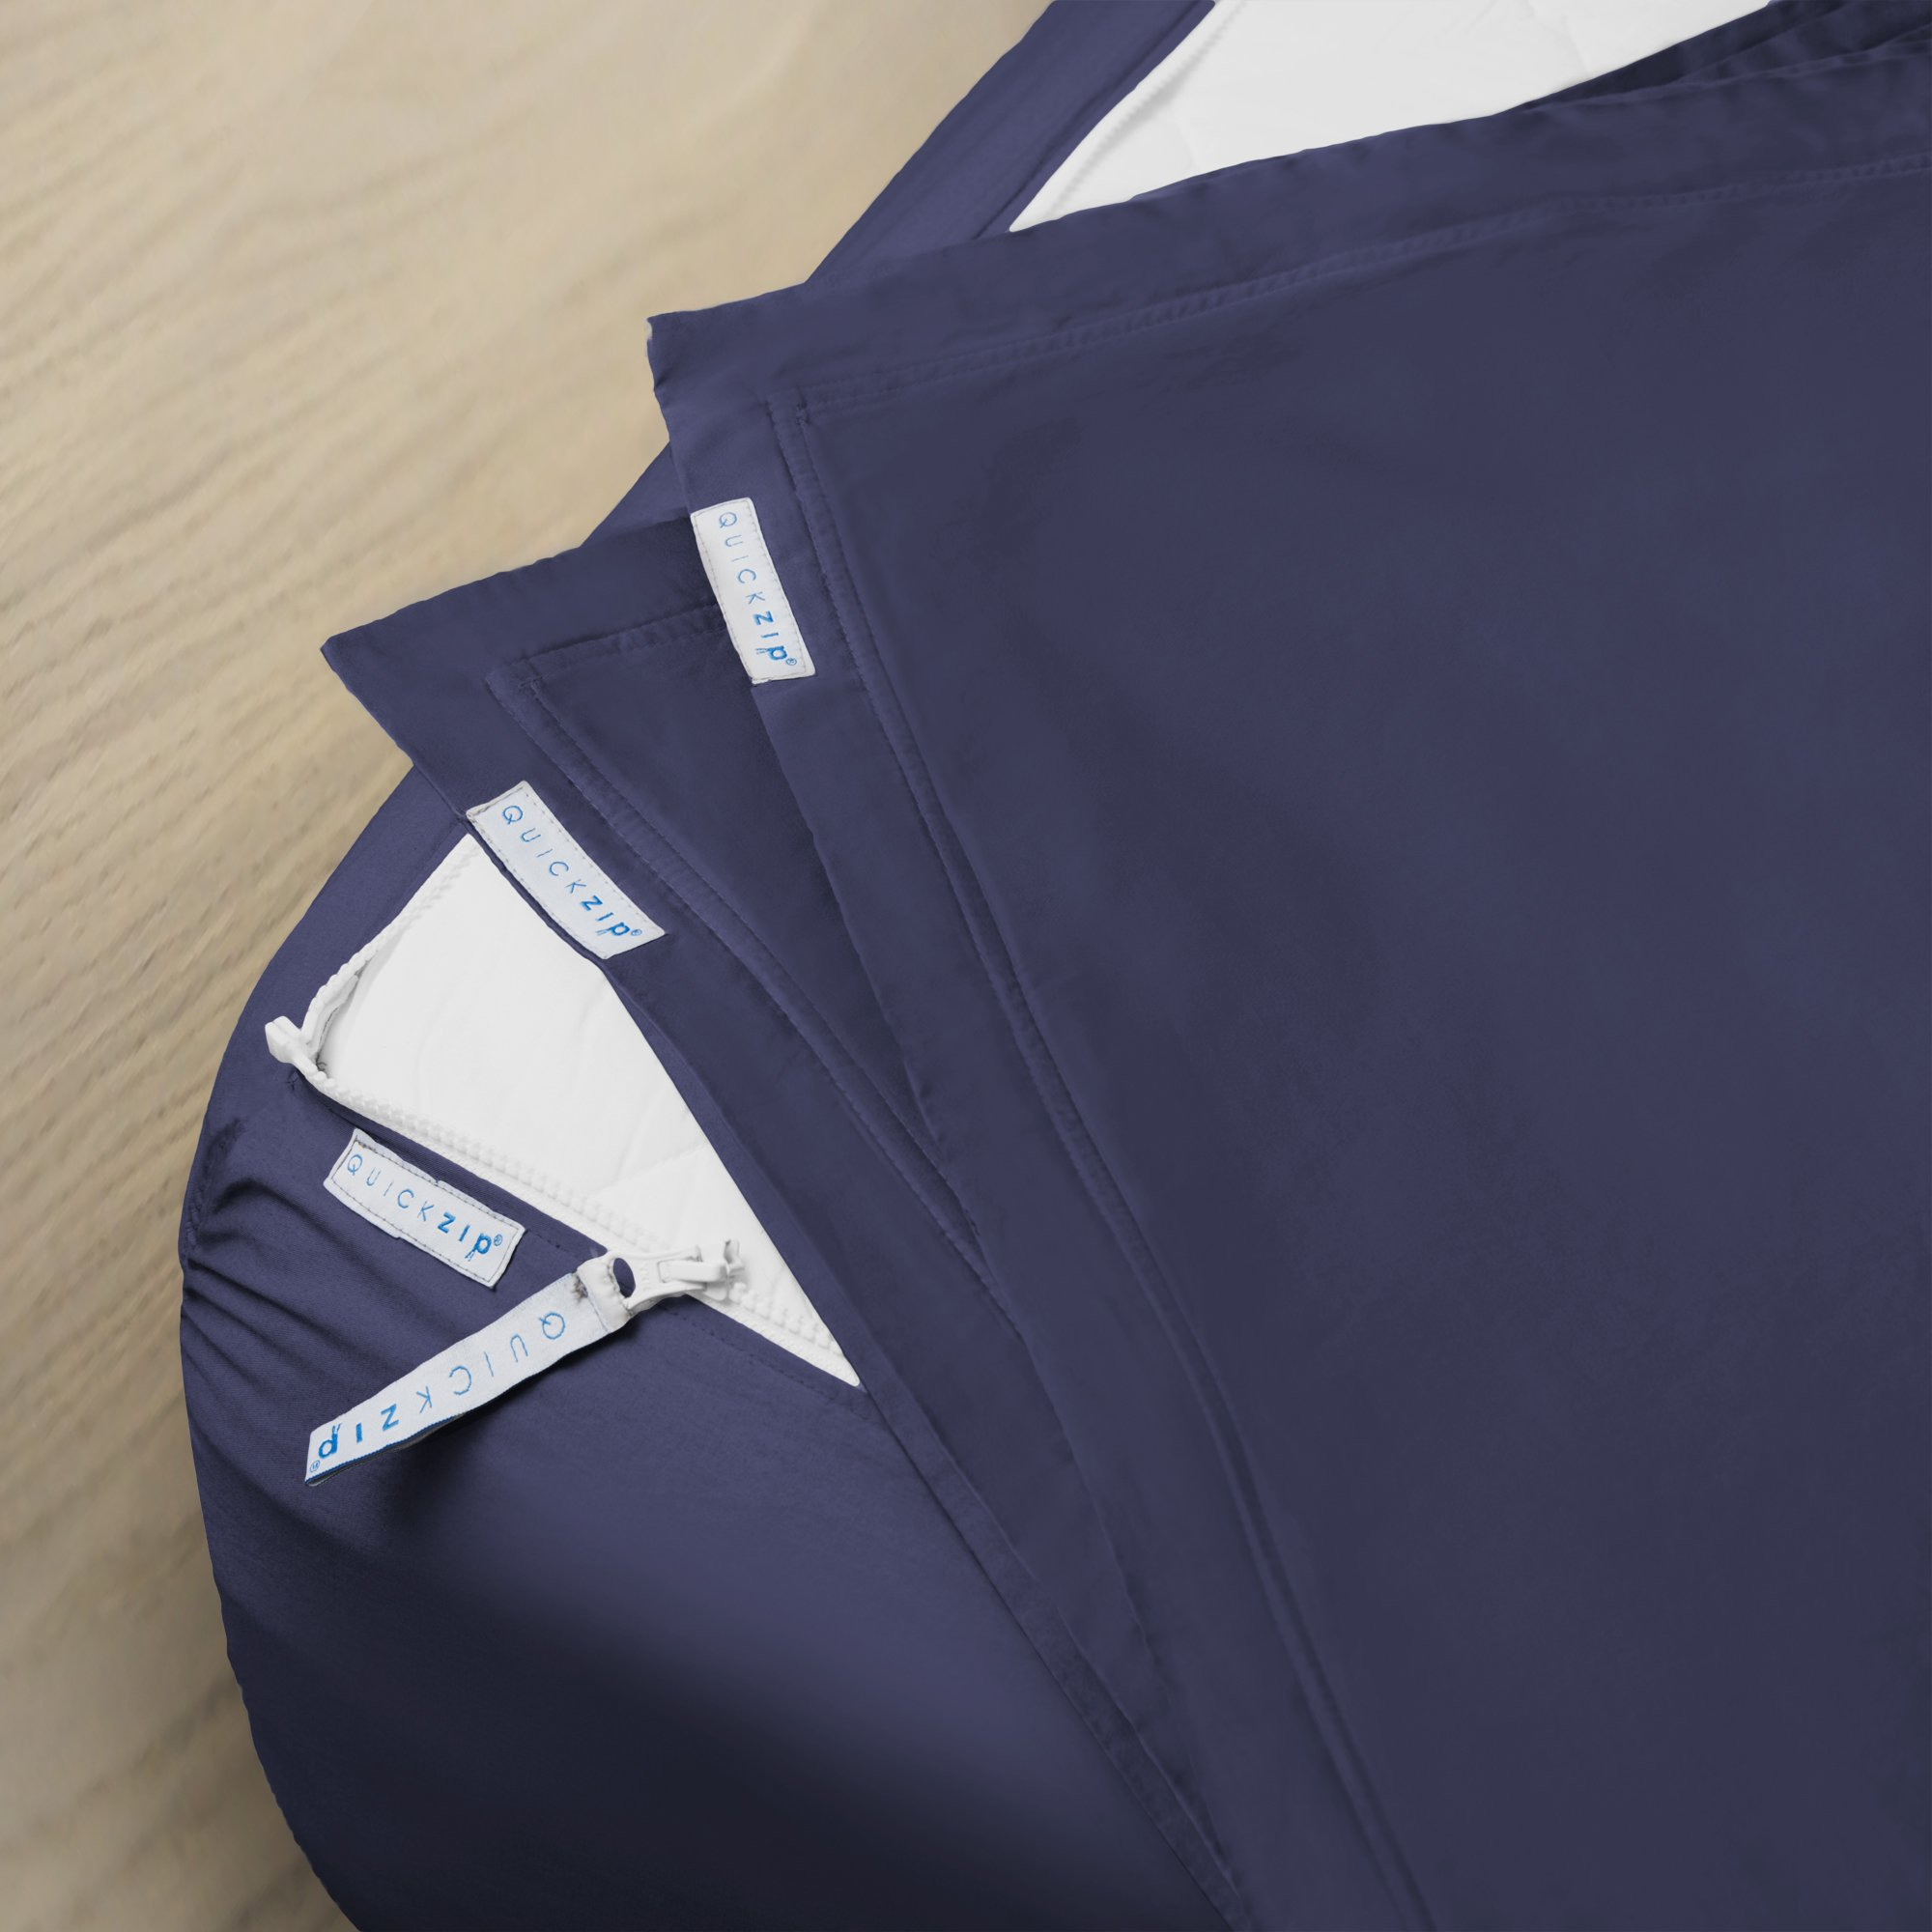 the quick zip zipper fitted sheet review